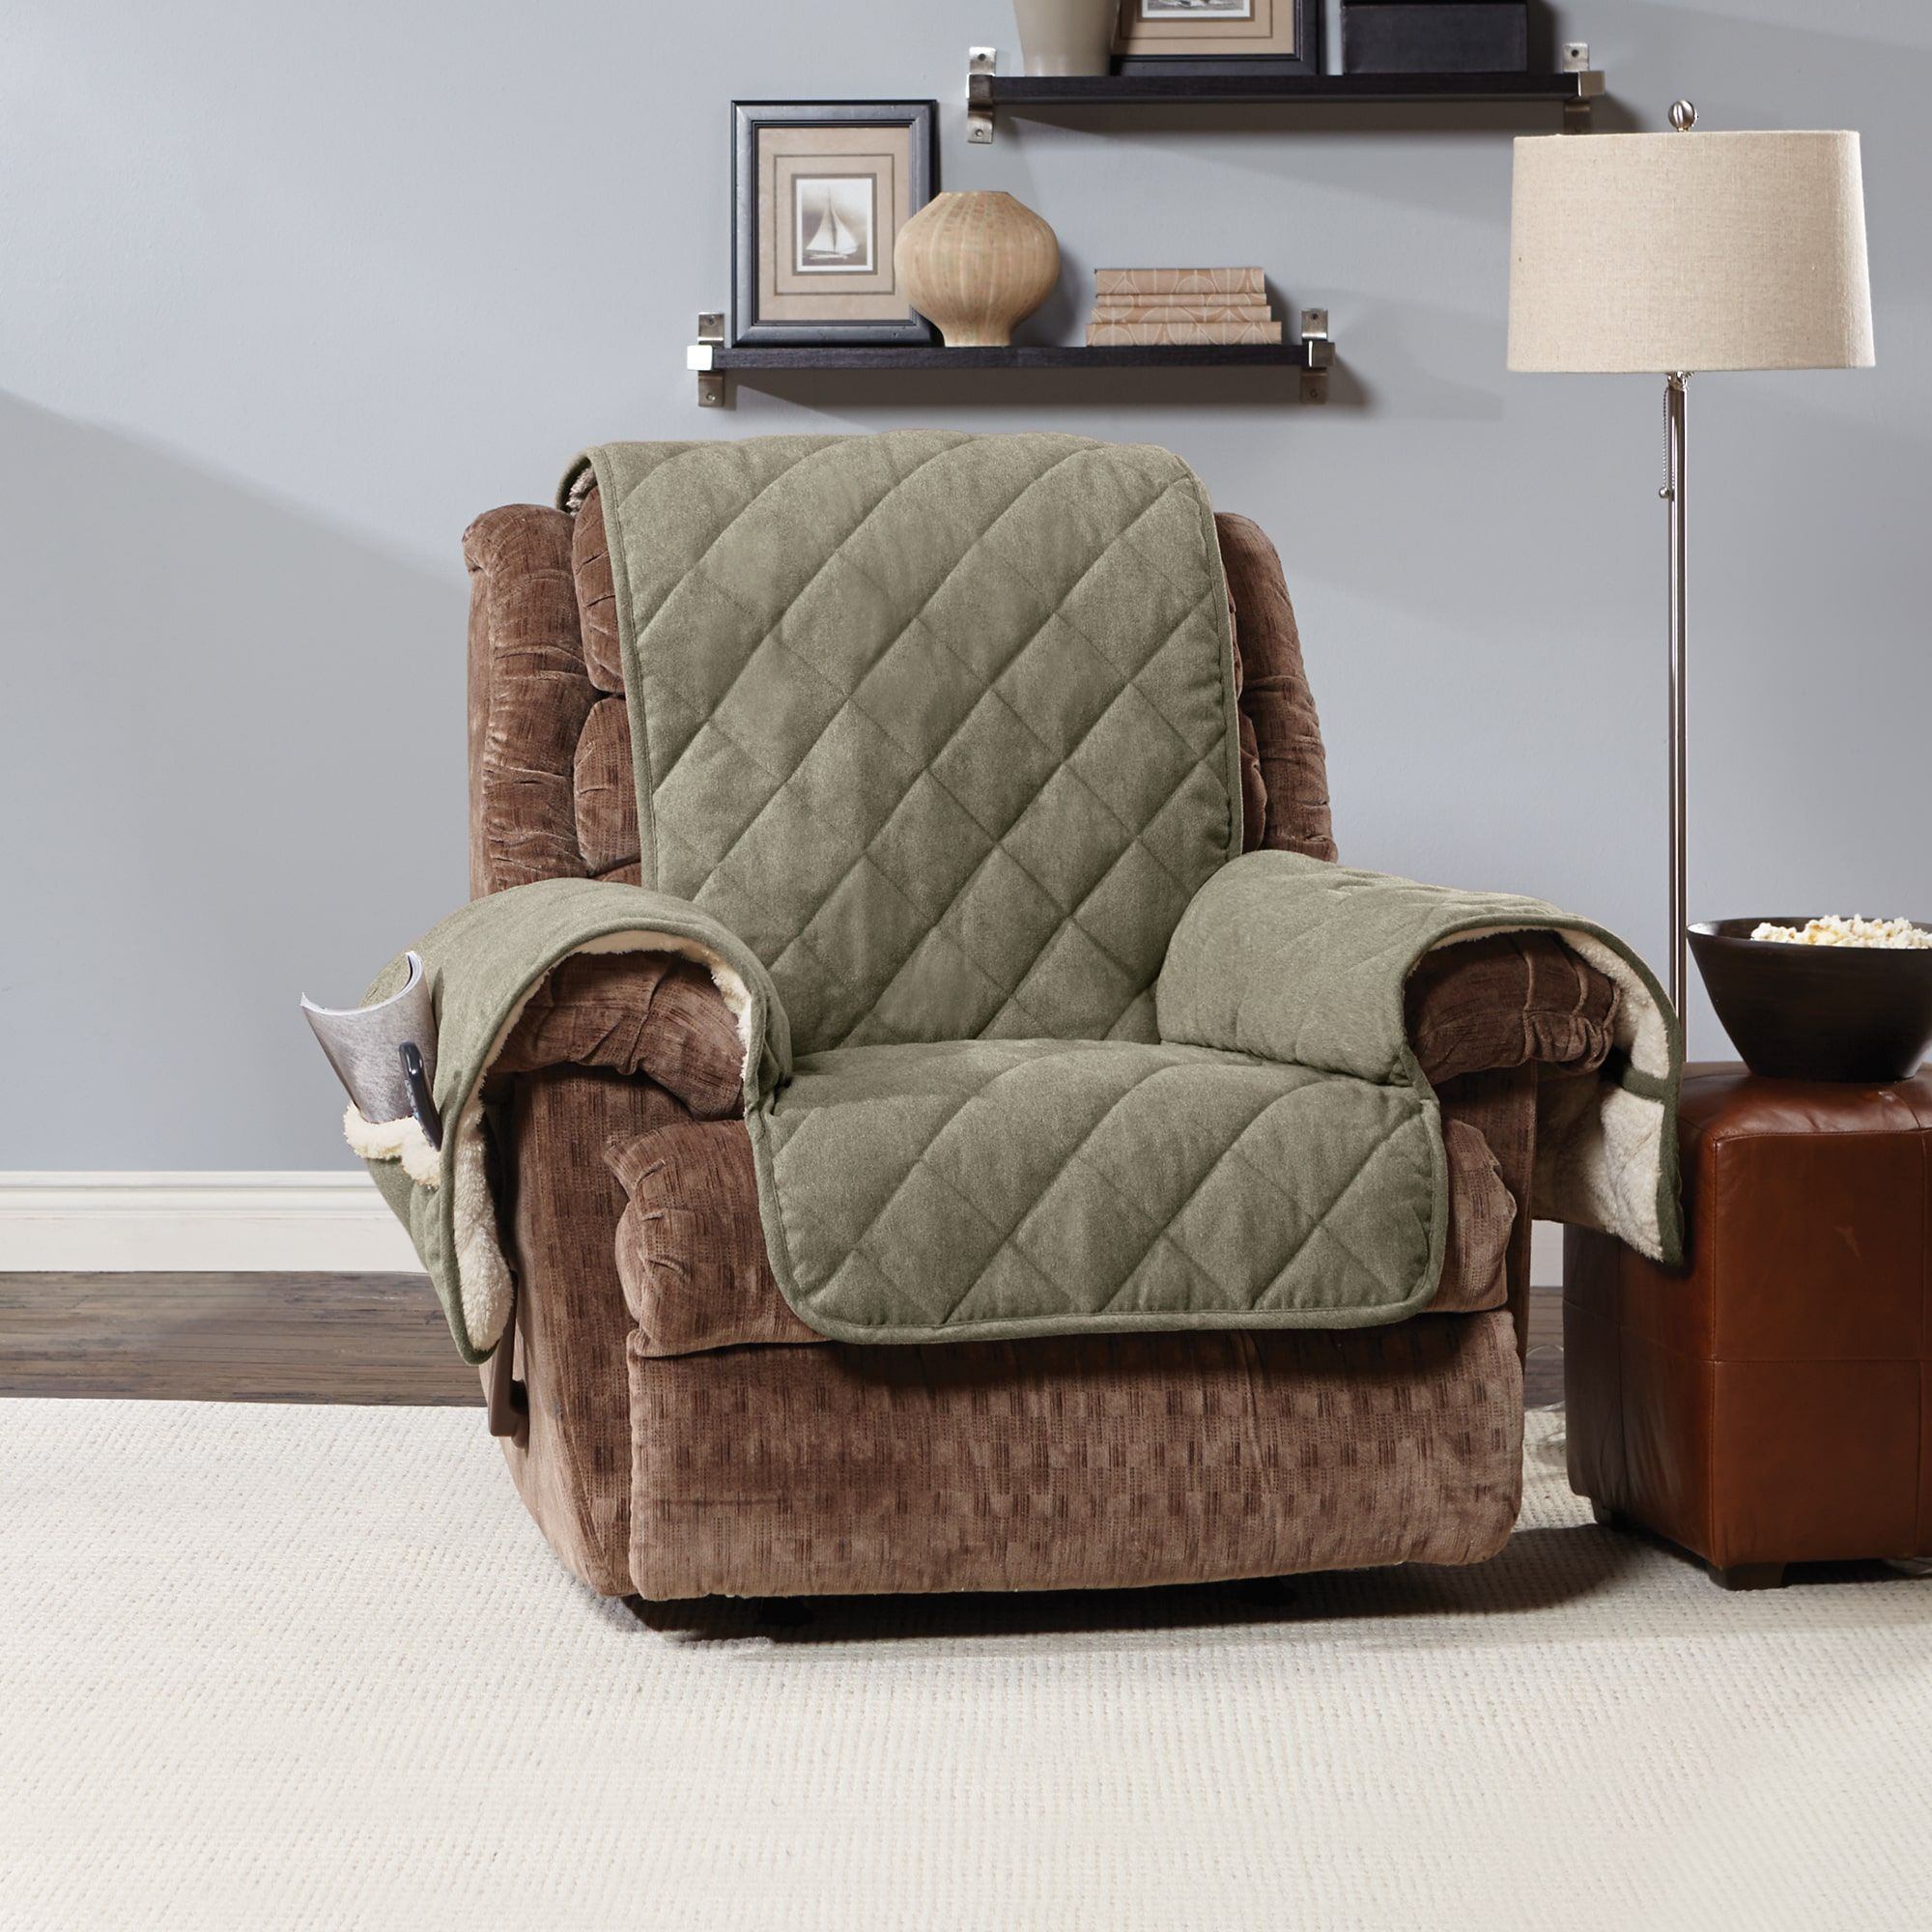 fit covers wing pique details reviews medium room sure living slipcovers look stretch chairs lift instructions recliner view sleek slipcover for tailored a